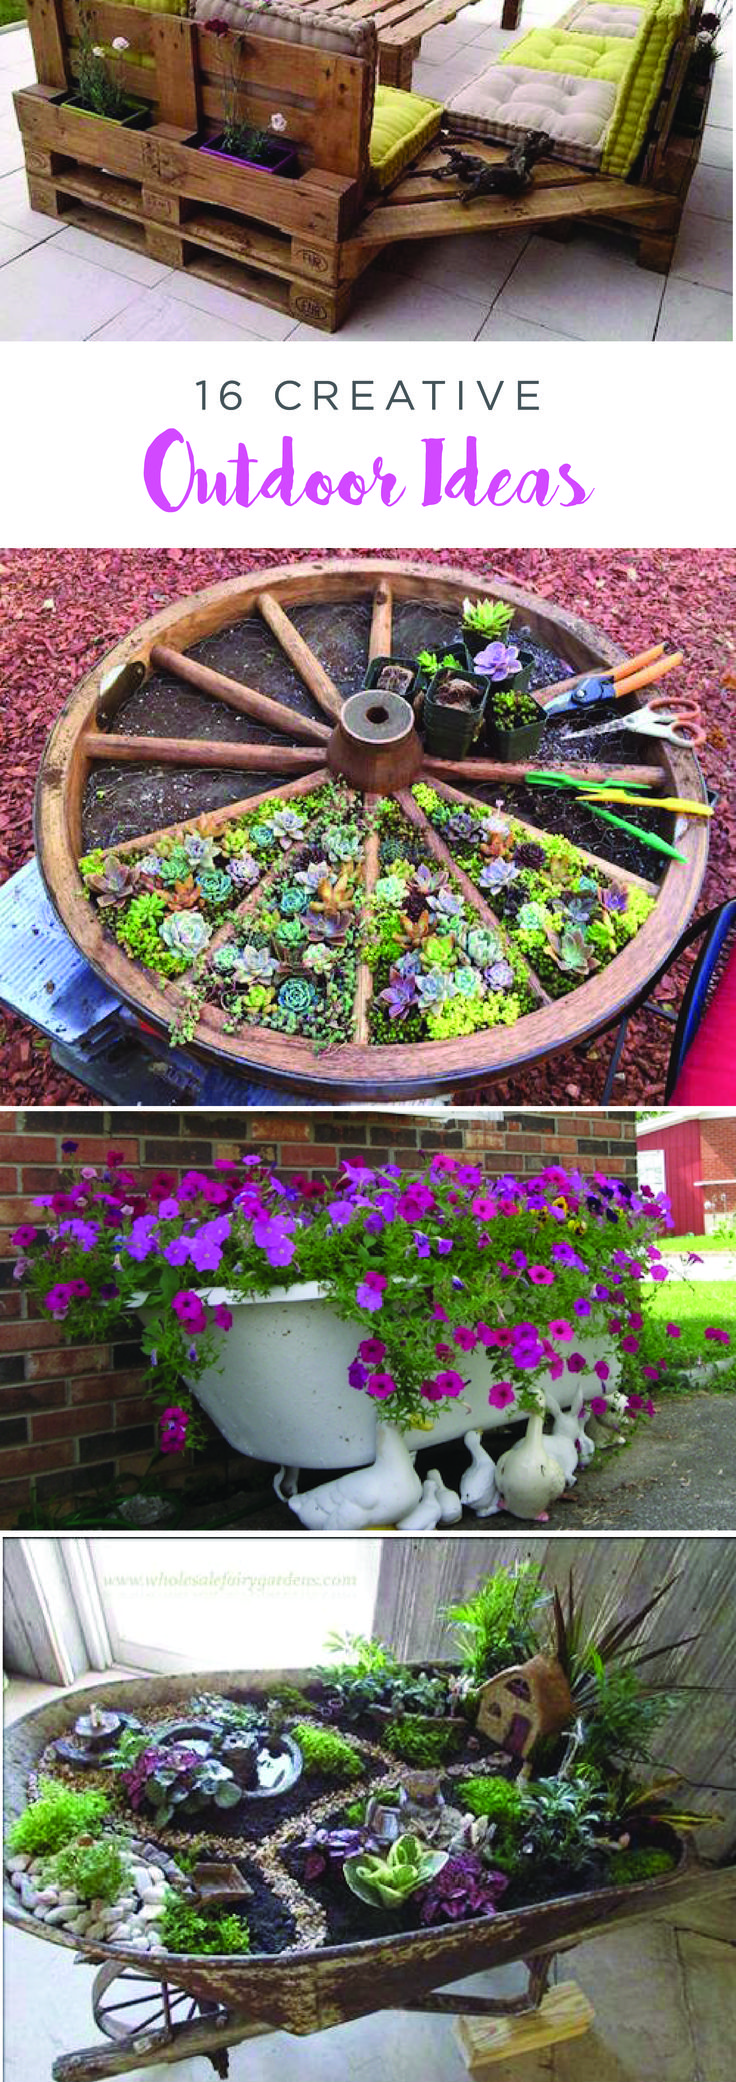 Diy garden decor ideas - Give Your Backyard A Spring Makeover And Repurpose Unused Items With These Creative Diy Gardening And